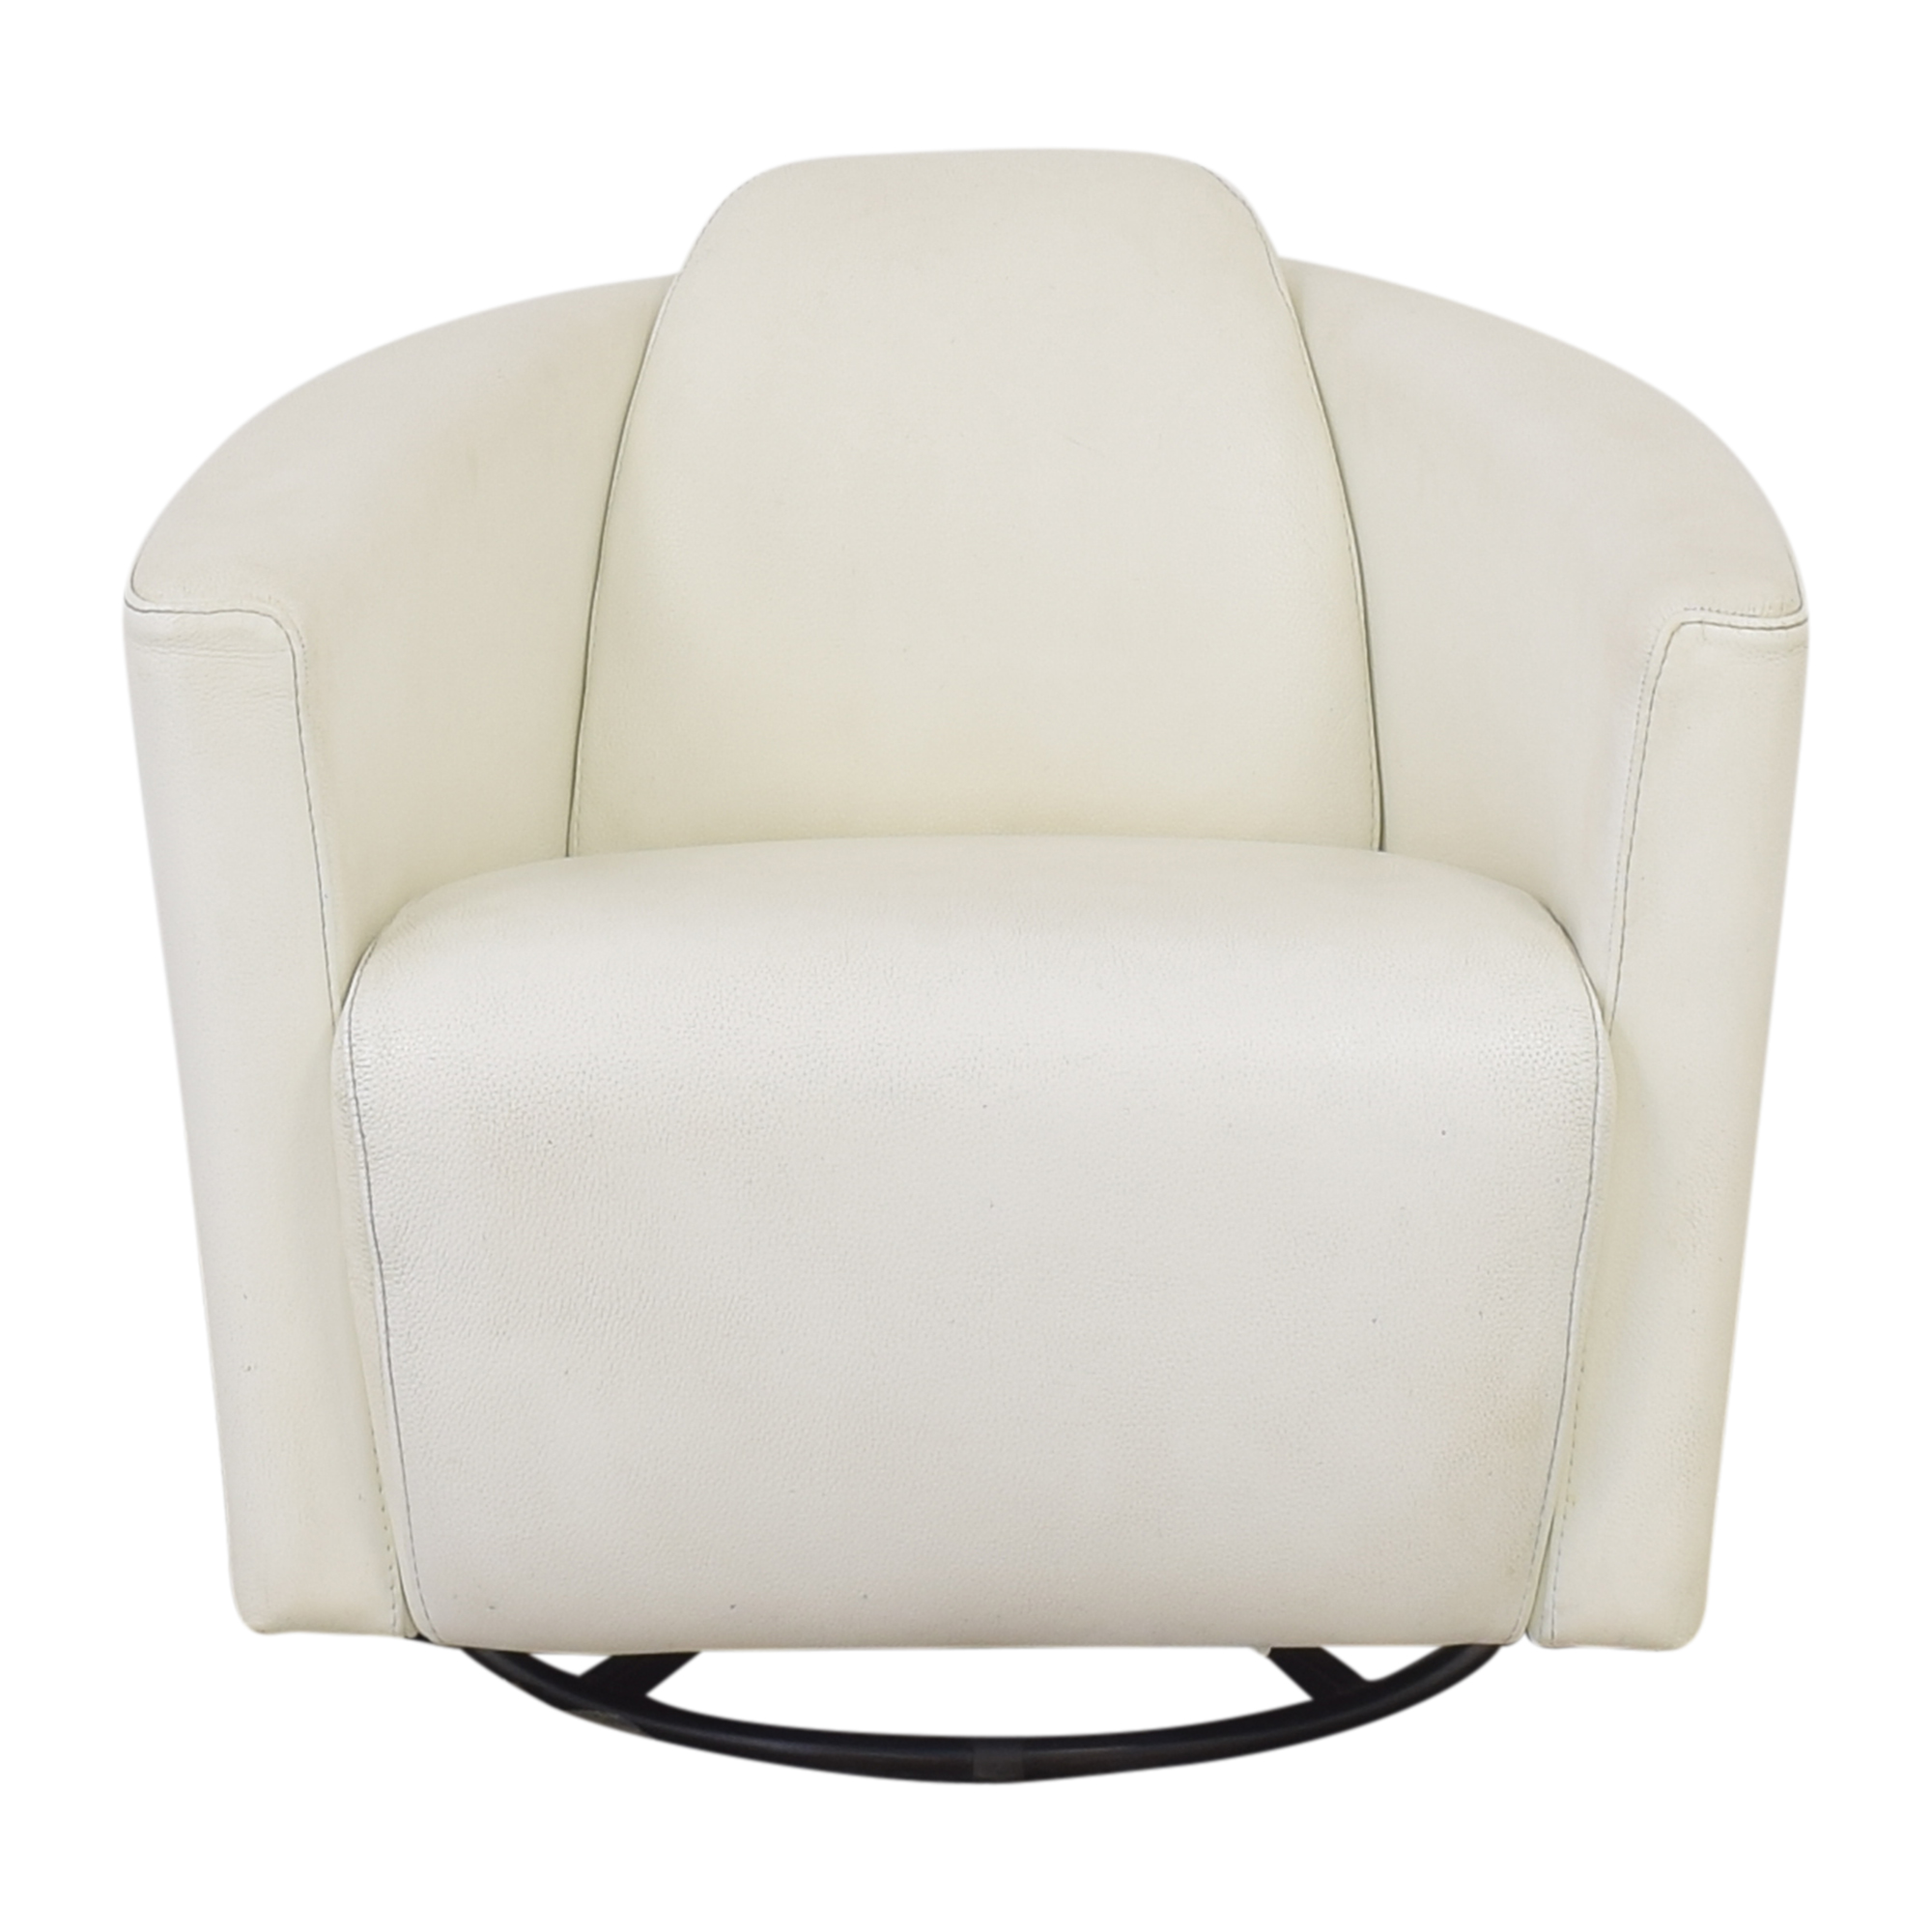 Bloomingdale's Bloomingdale's Nicoletti Hollister Chair on sale